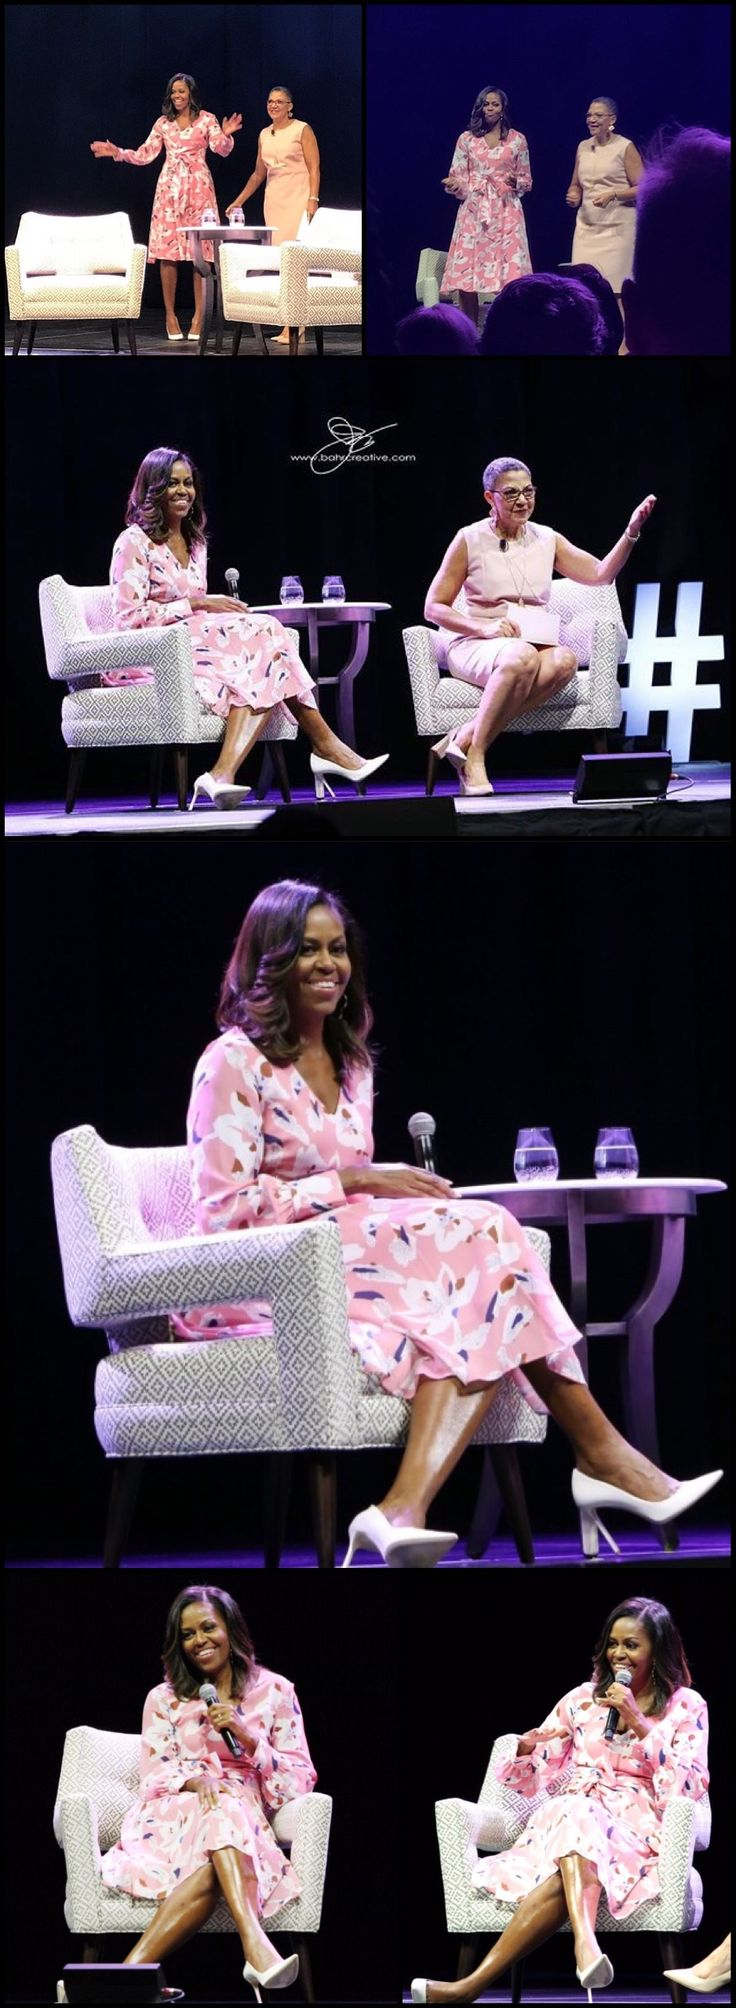 Former #FirstLady #MichelleObama speaks, emphasizing that women must celebrate their strength, during a live conversation with The Women's Foundation of Colorado President and #CEO Lauren Y. Casteel at #PepsiCenter in #Denver #Colorado Tuesday night #June25th #2017 speaking to a crowd of some 8000 people #WFCO #ouchmagazineny #ouchmagazine #LaurenYCasteel